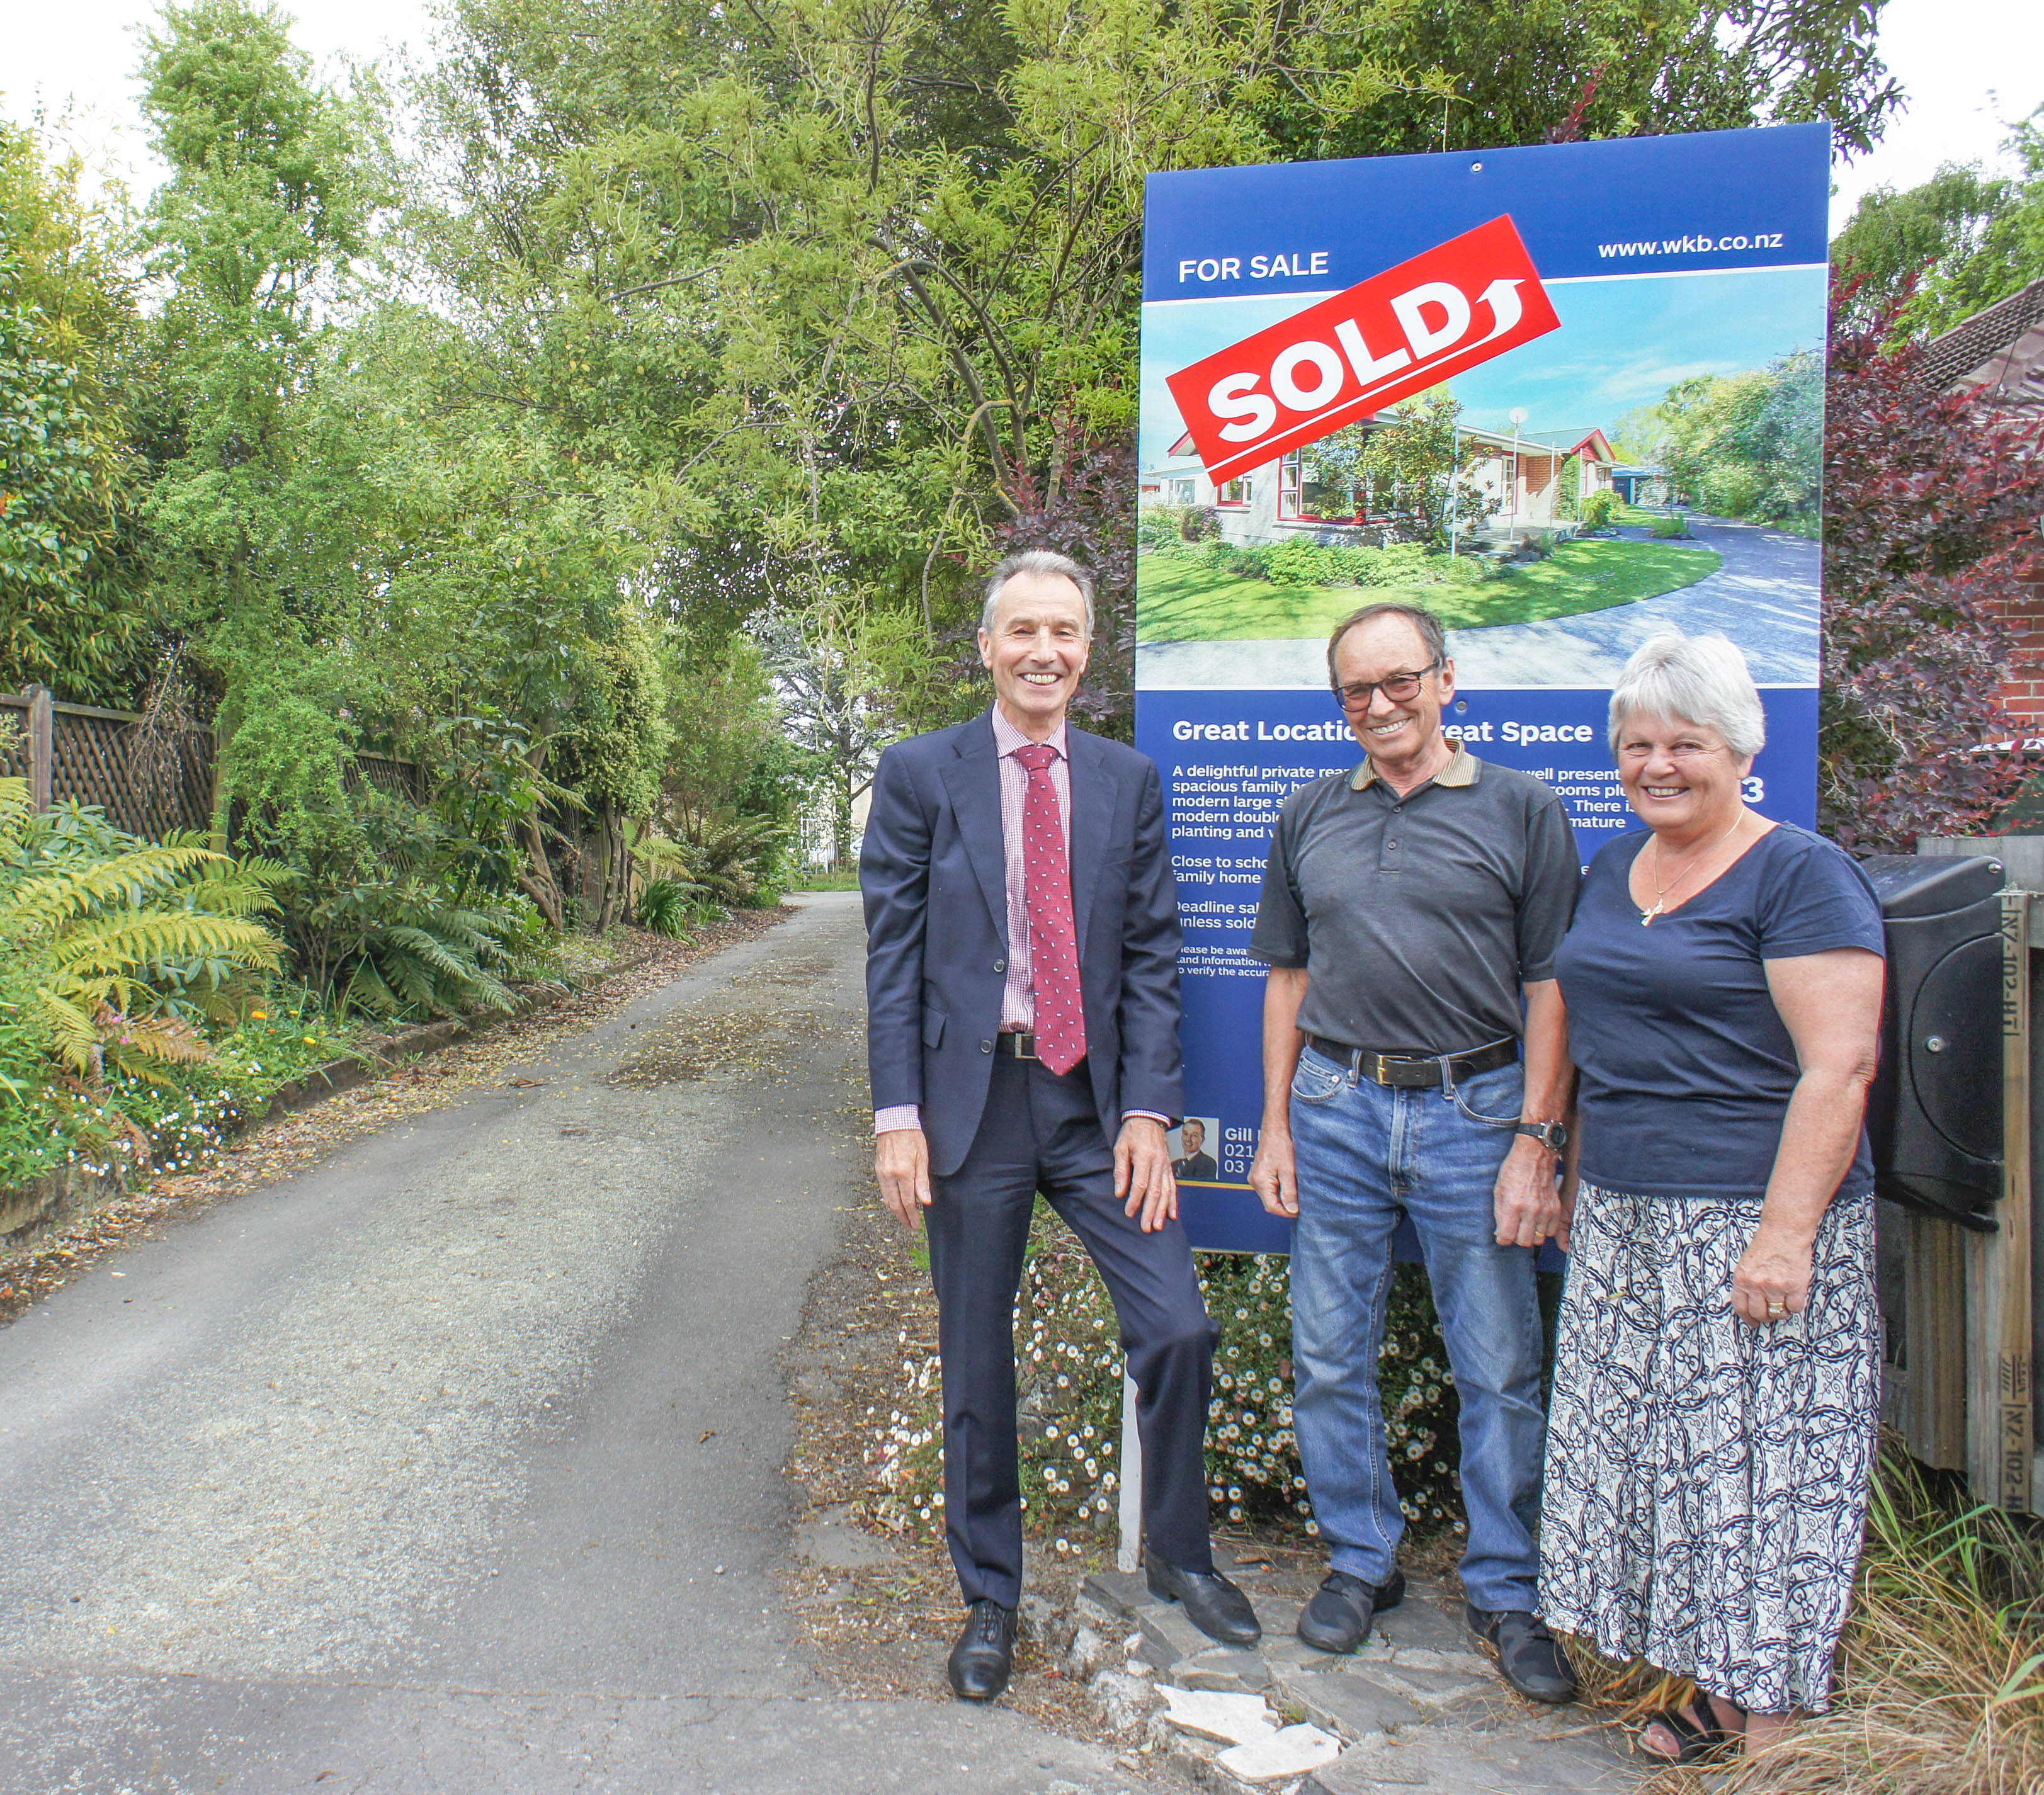 Returning Clients Sell, Christchurch Real Estate Agents, Property Sales, Home Sales, House Sales, Canterbury Real Estate Agents